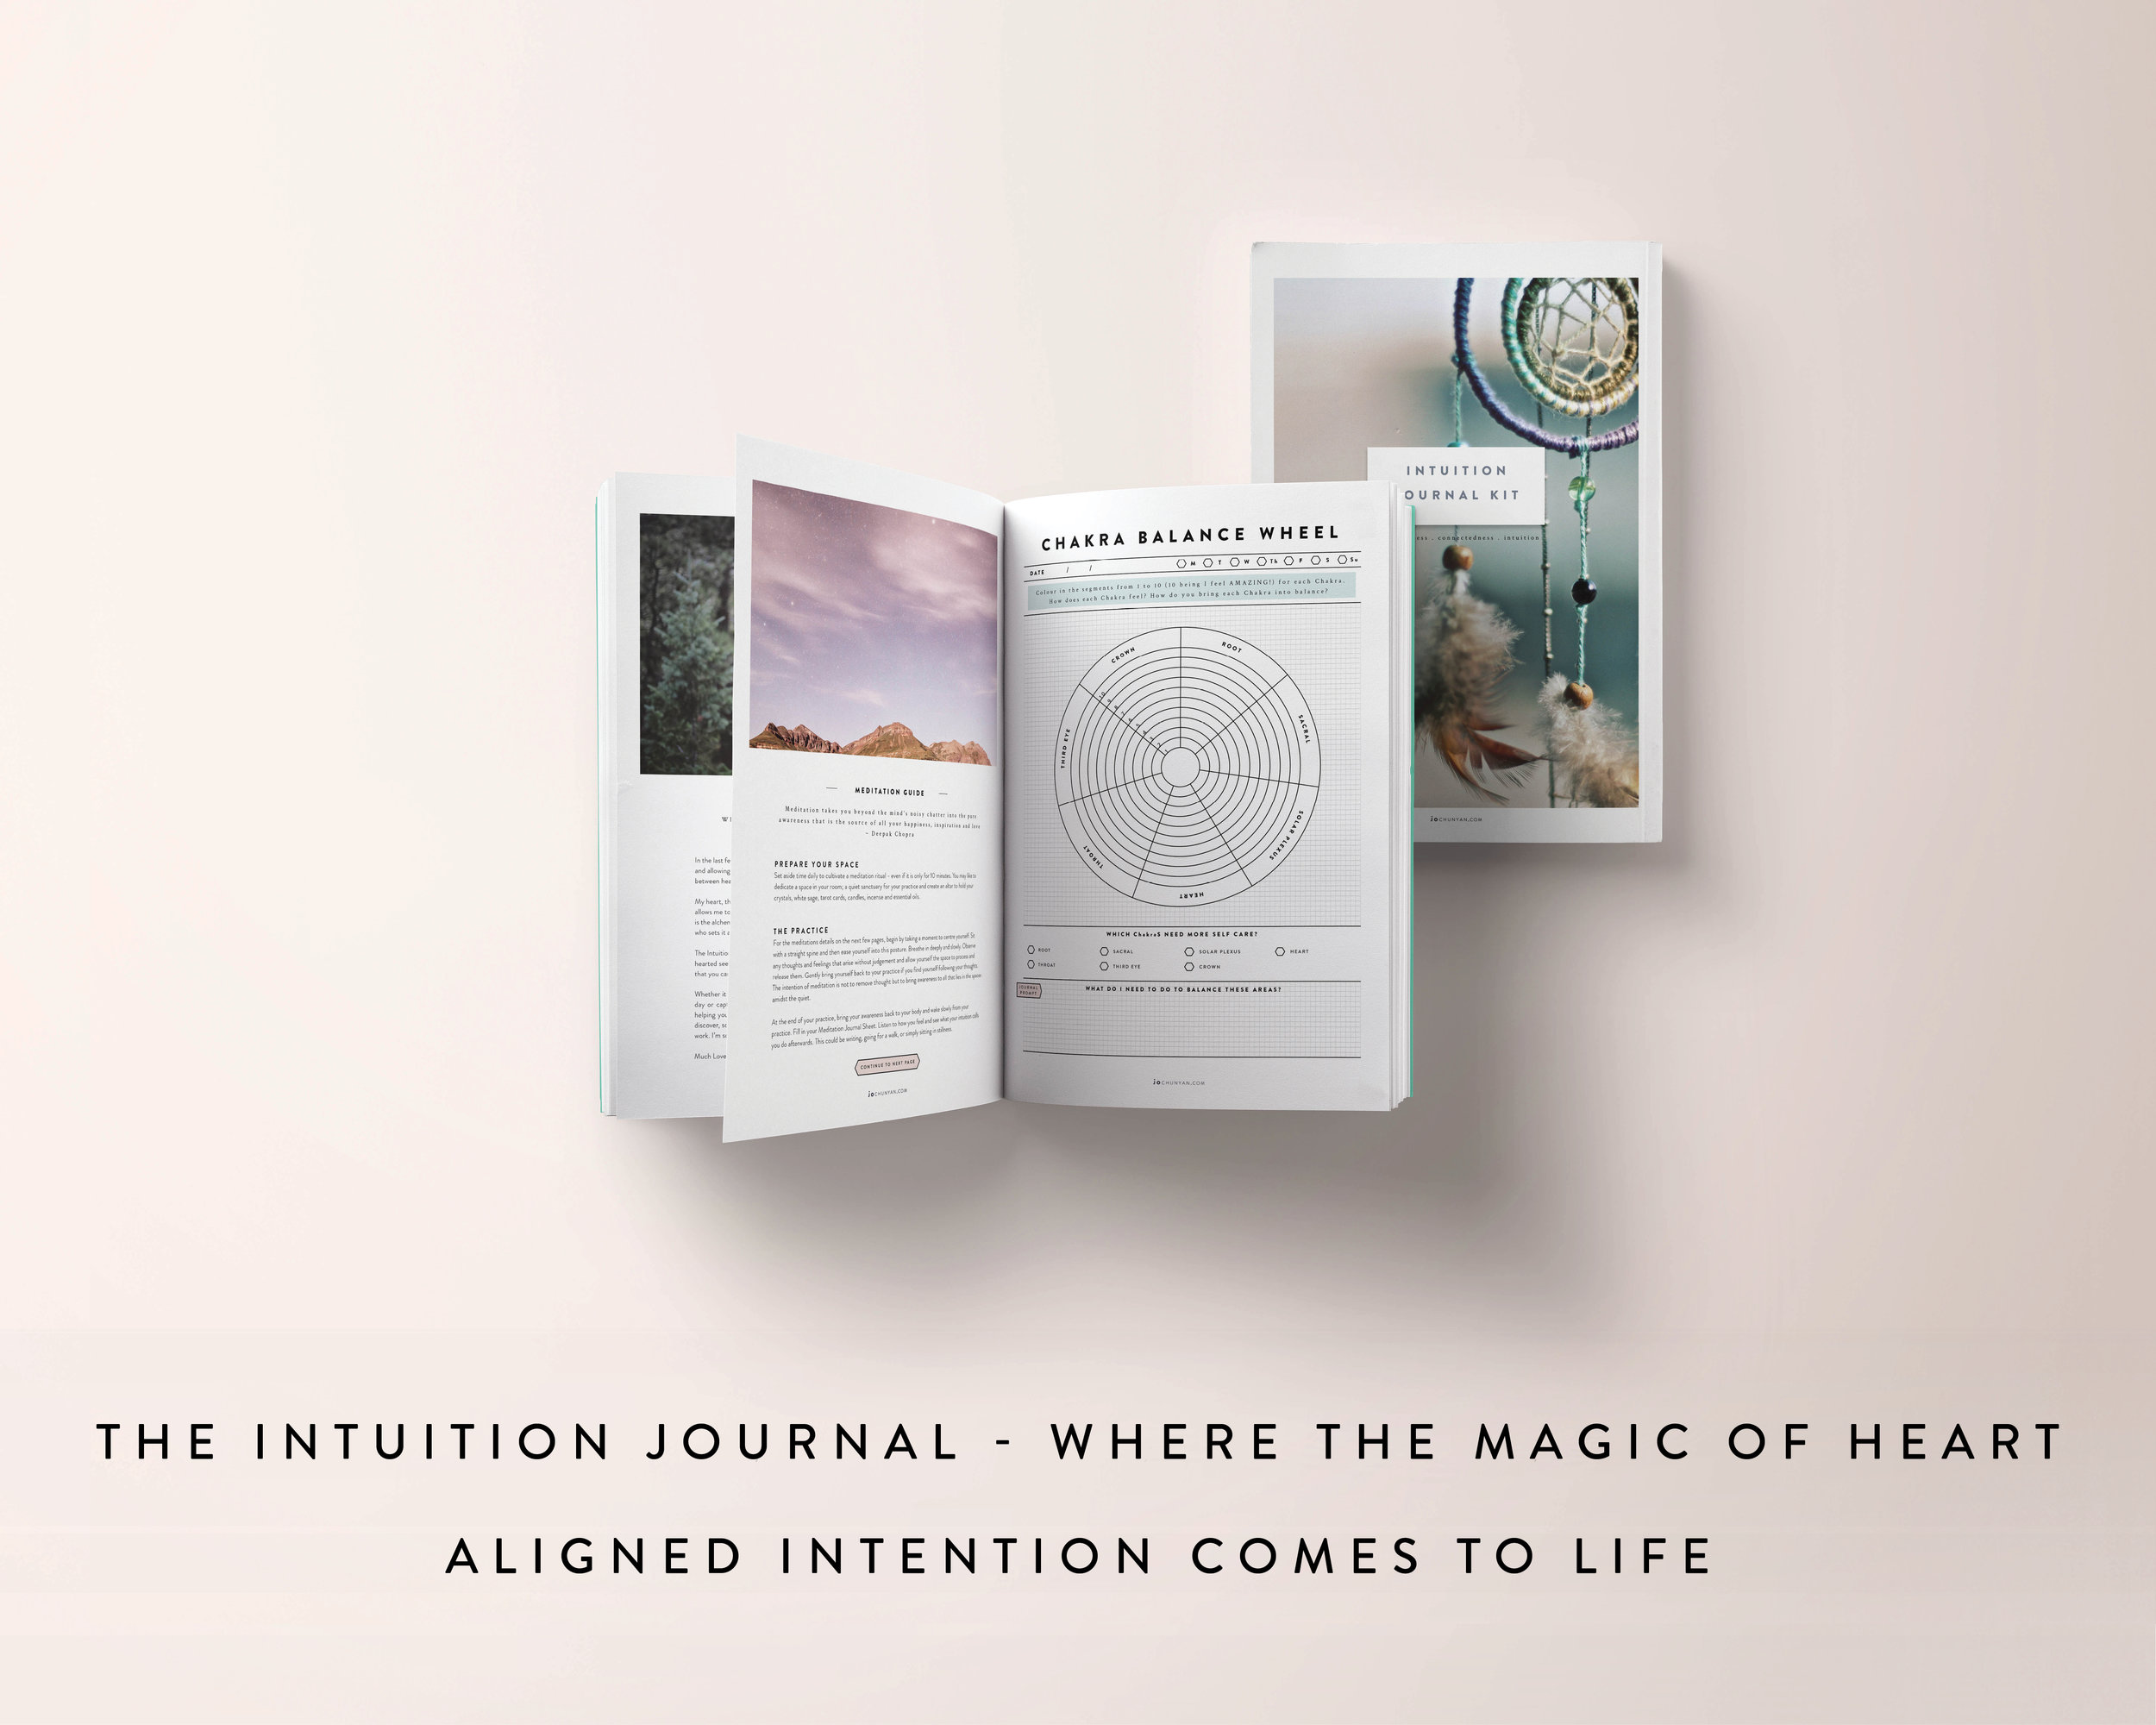 IntuitionJournalKit - Images25.jpg